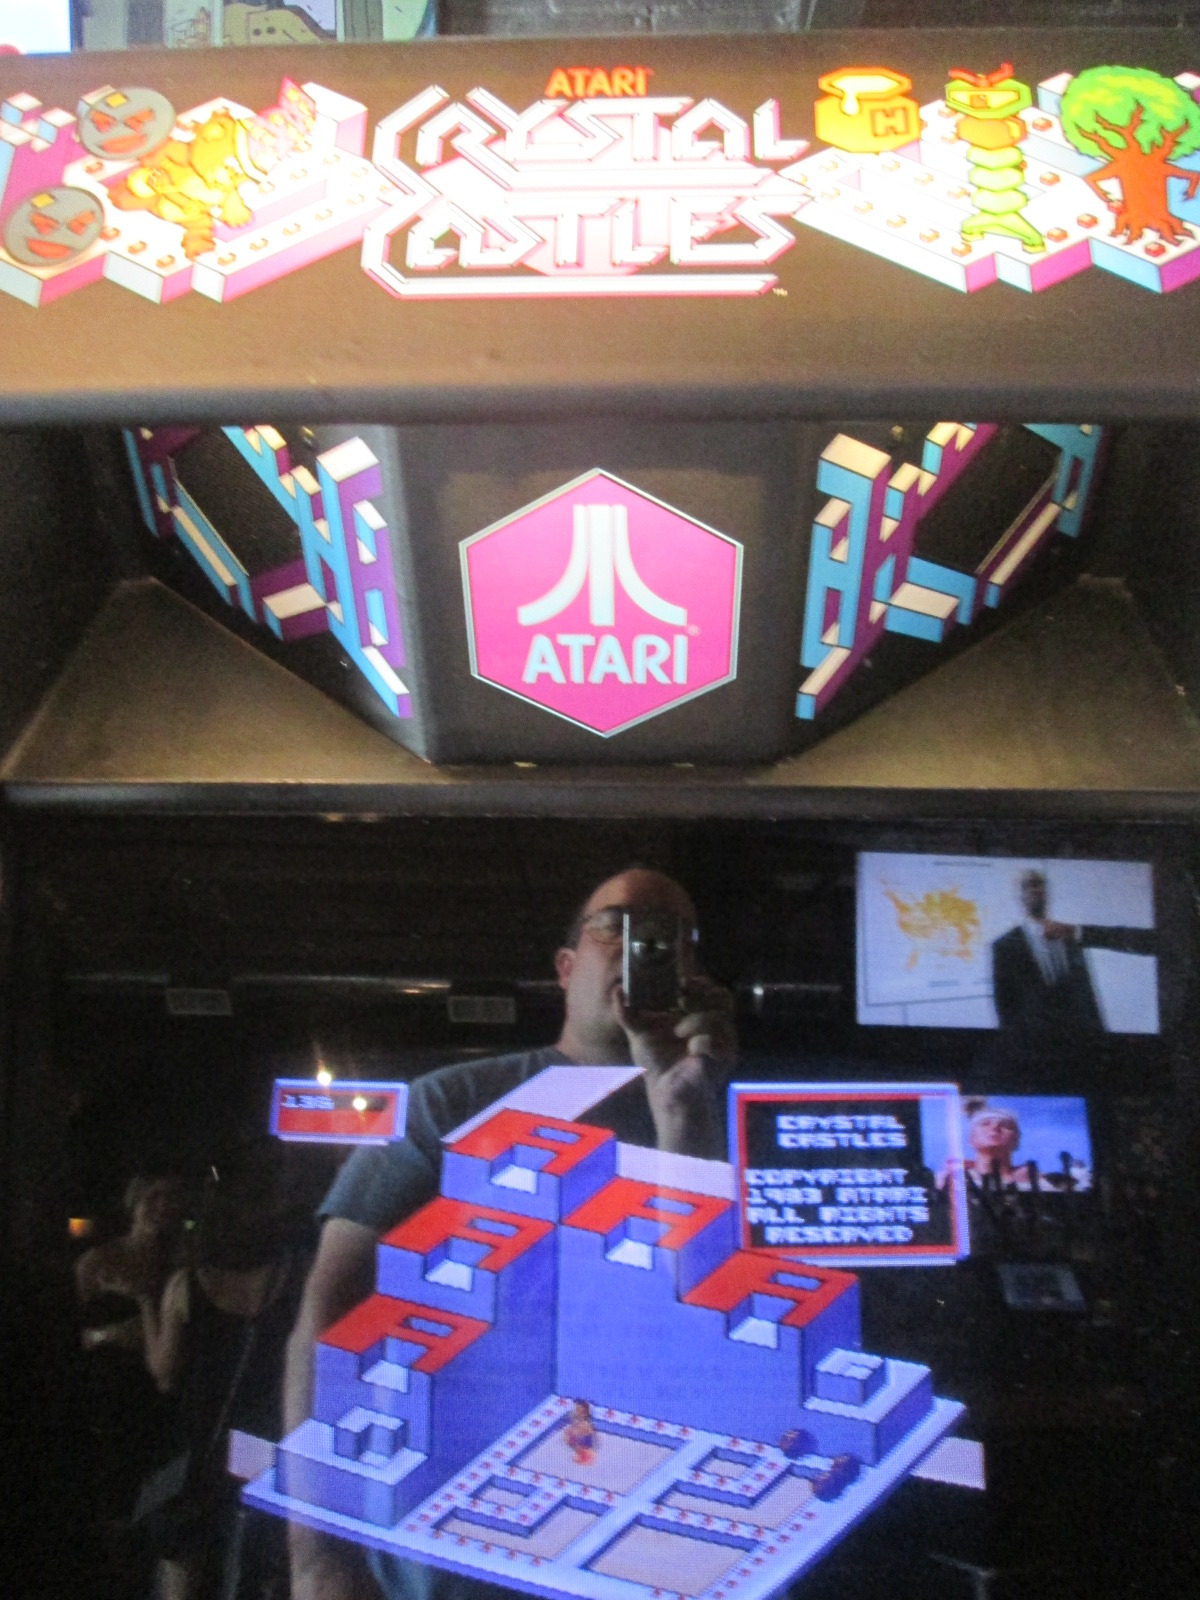 ed1475: Crystal Castles (Arcade) 12,319 points on 2016-08-28 16:04:39